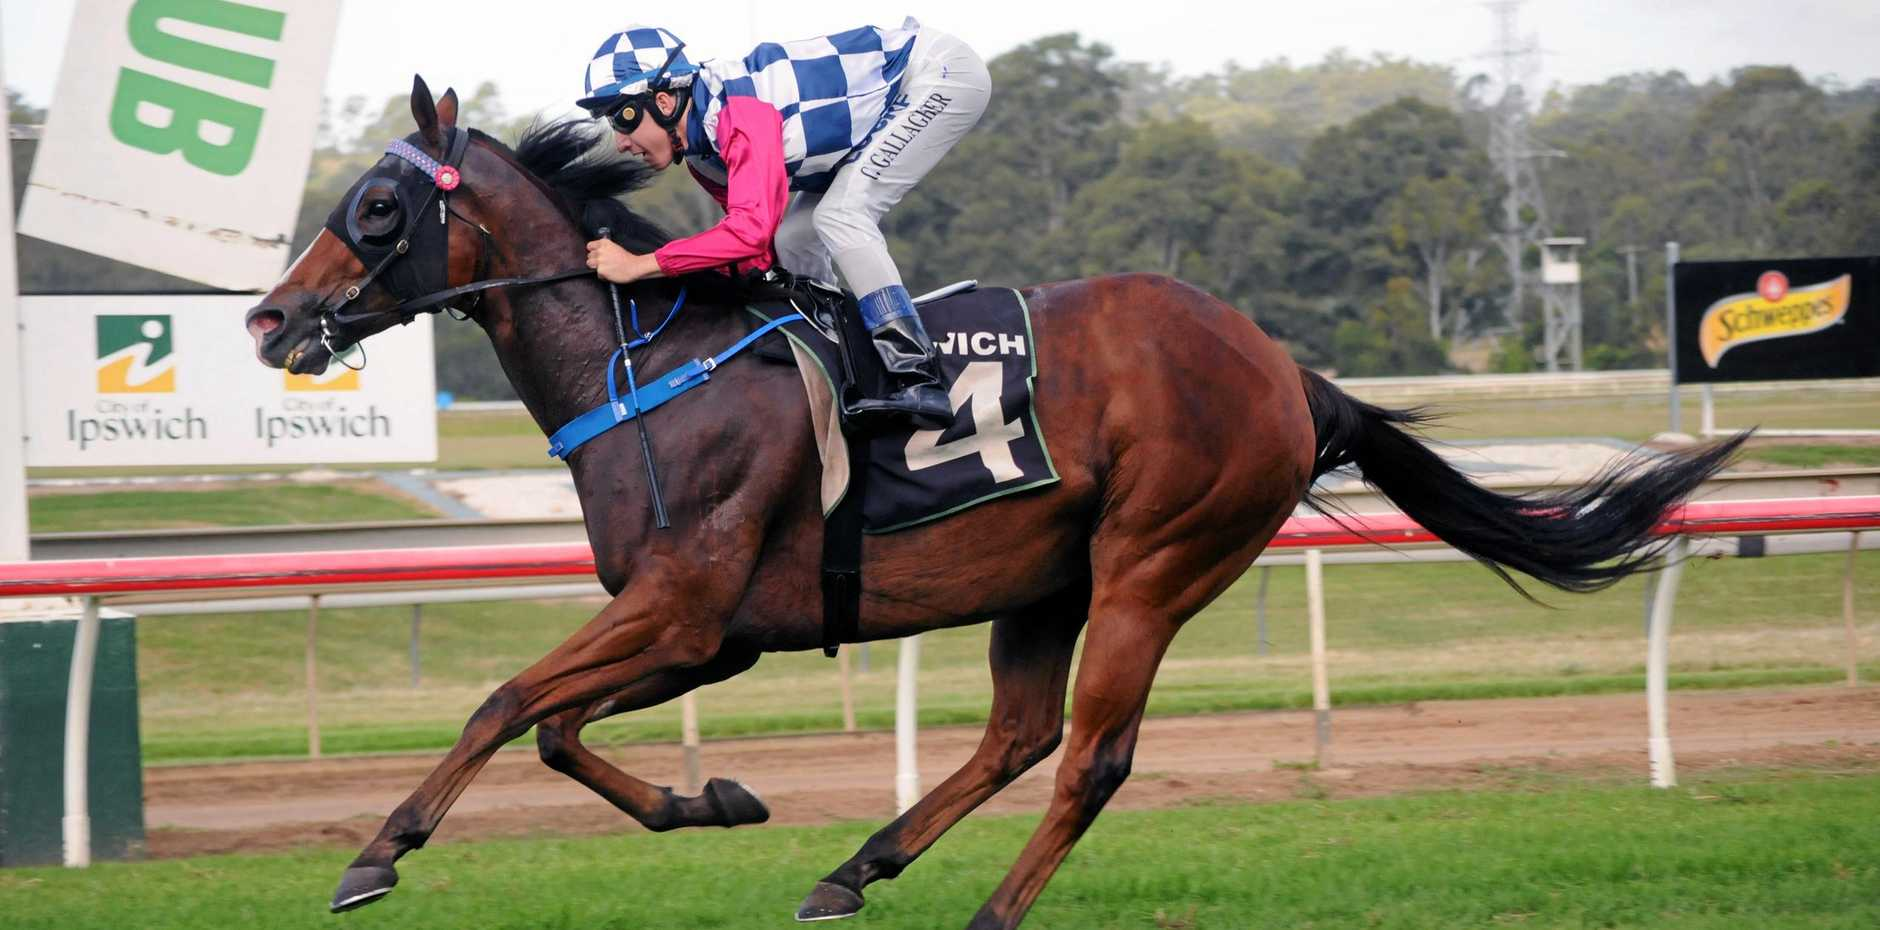 POPULAR VICTORY: Rideonabigjetplane, ridden by Clayton Gallagher and trained by Ipswich-based Garry Smith.